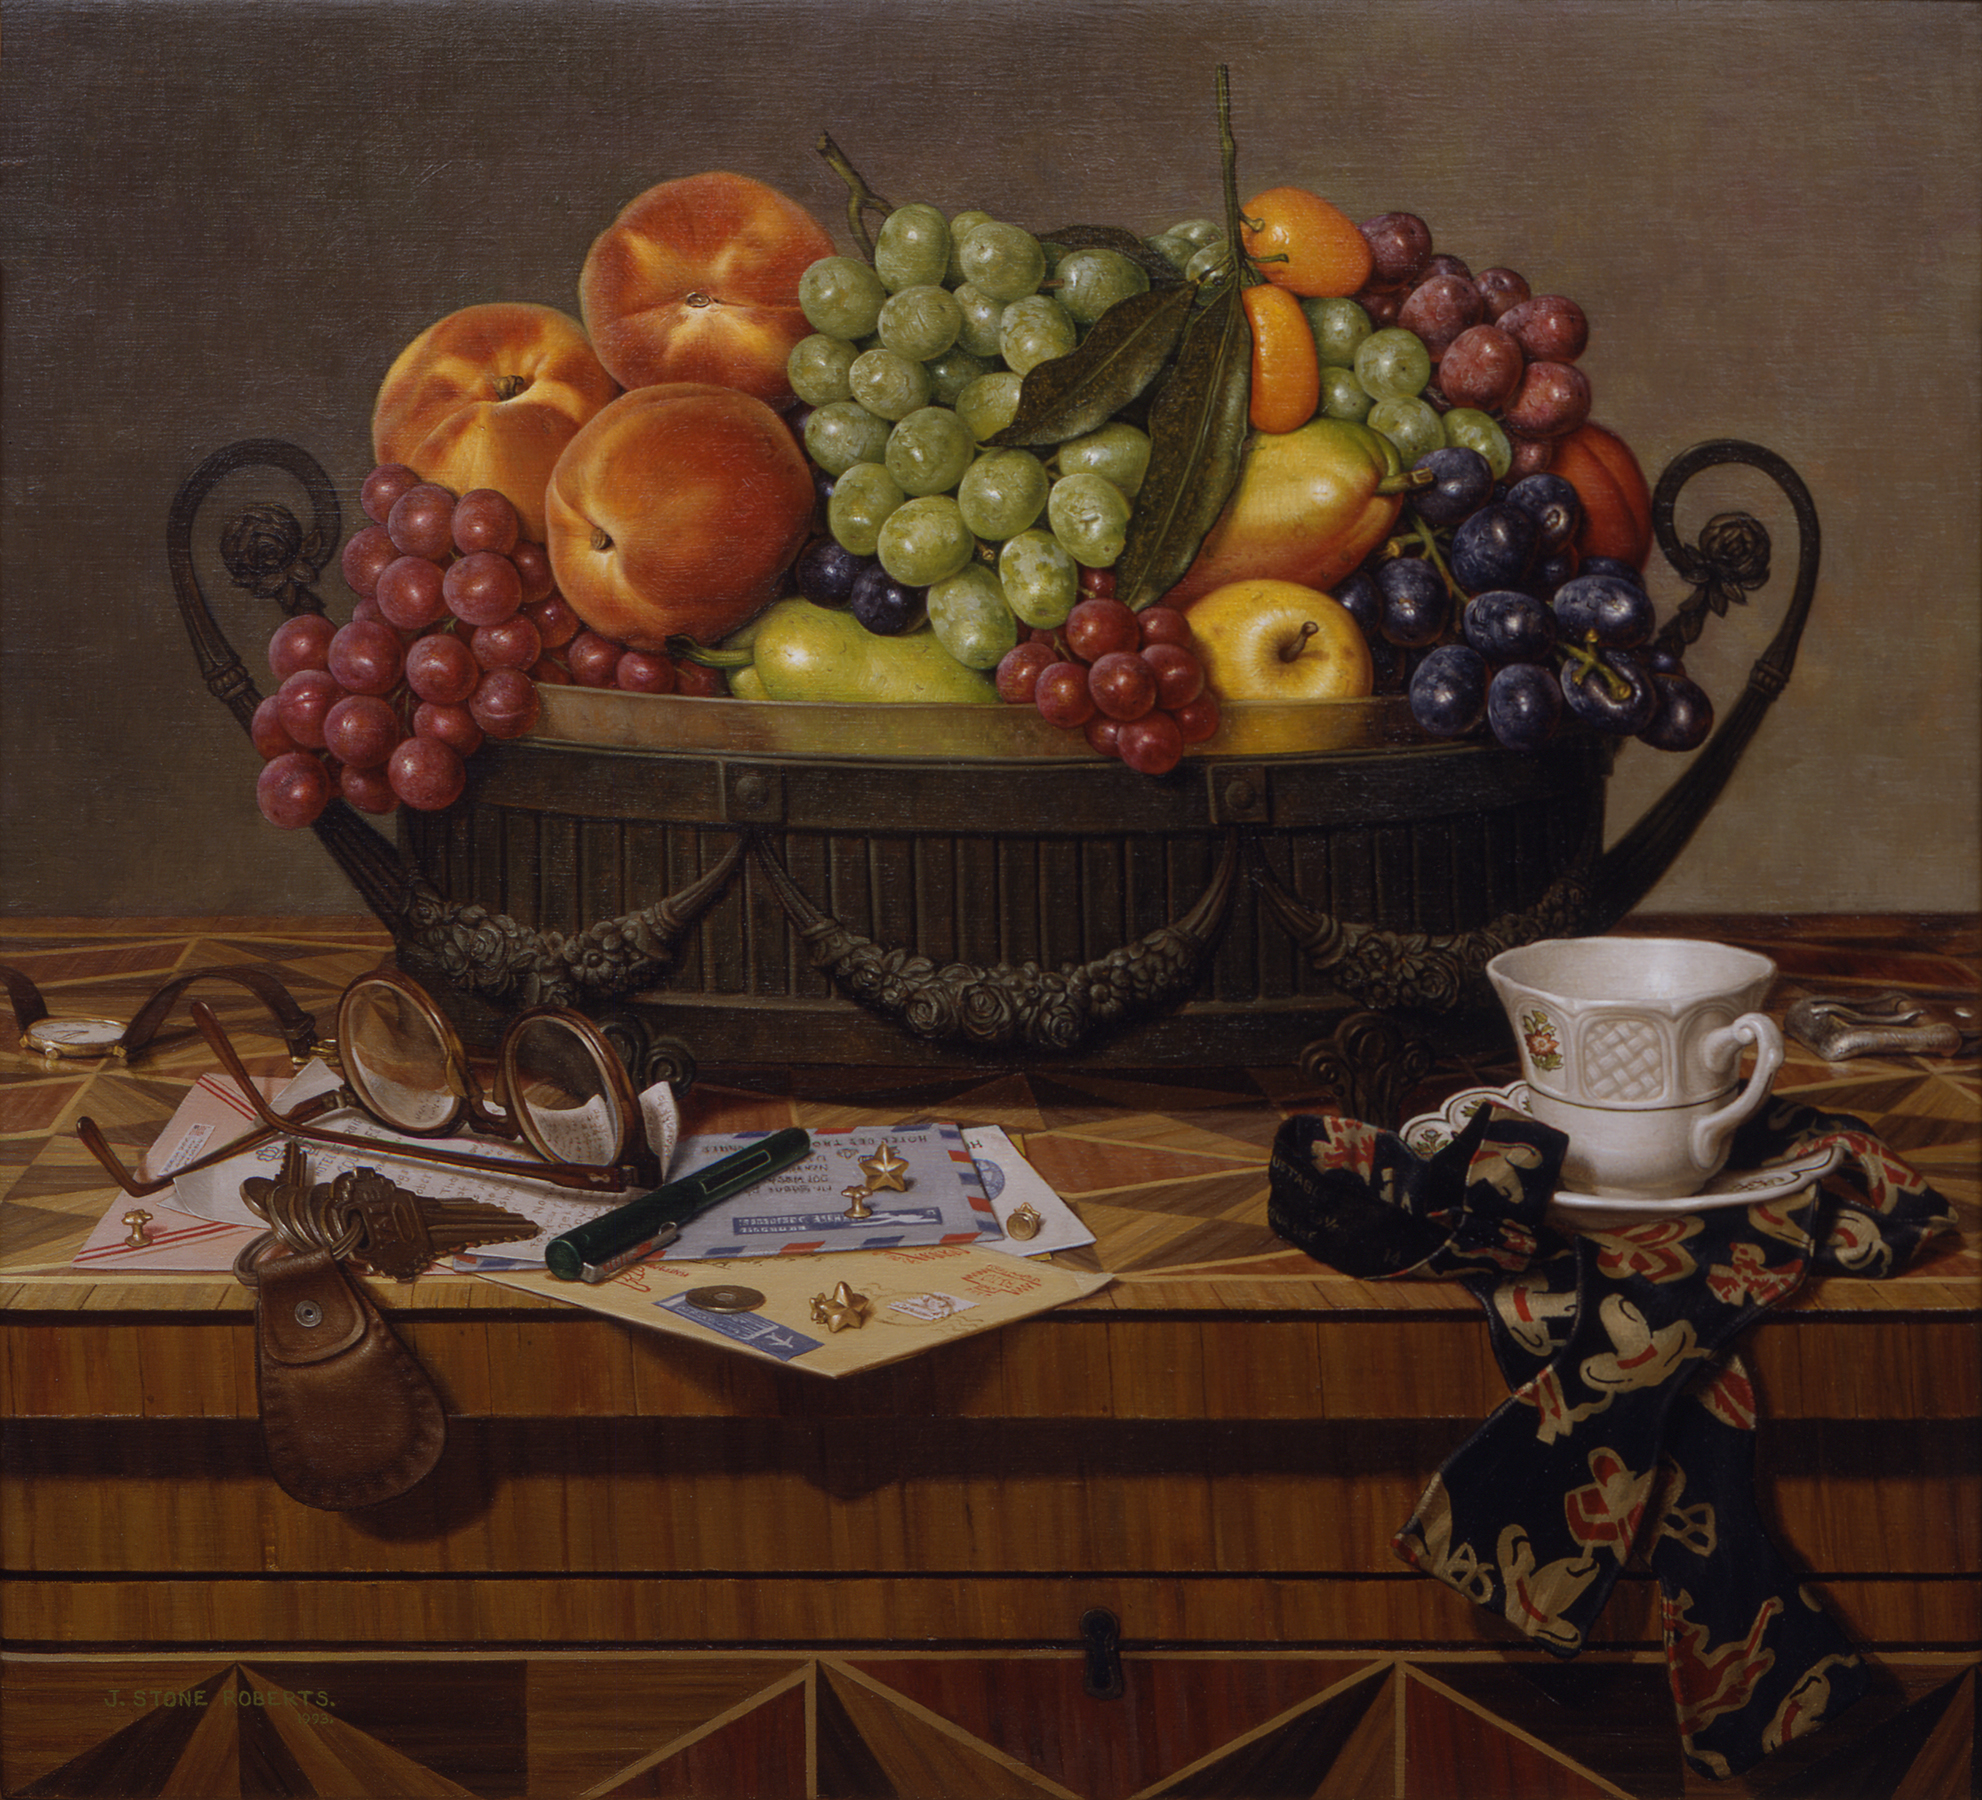 DRESSING TABLE STILL LIFE (1993)